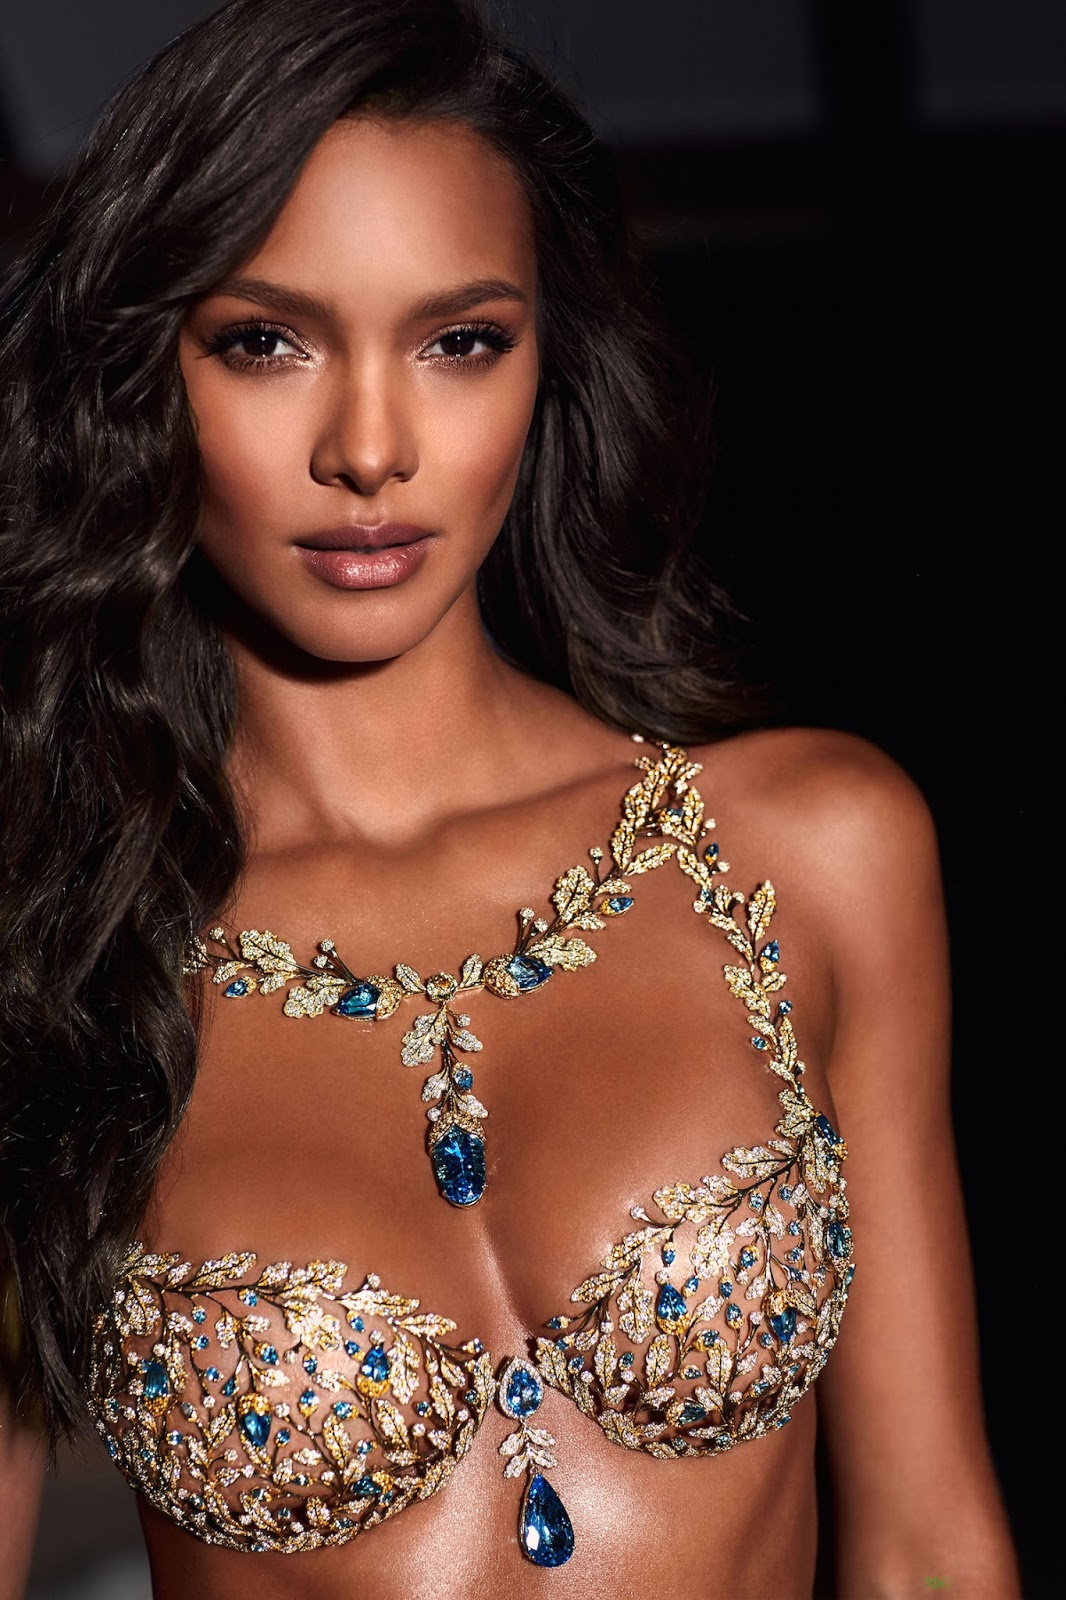 Lais Ribeiro to wear the $2 Million Victoria's Secret 2017 Fantasy Bra